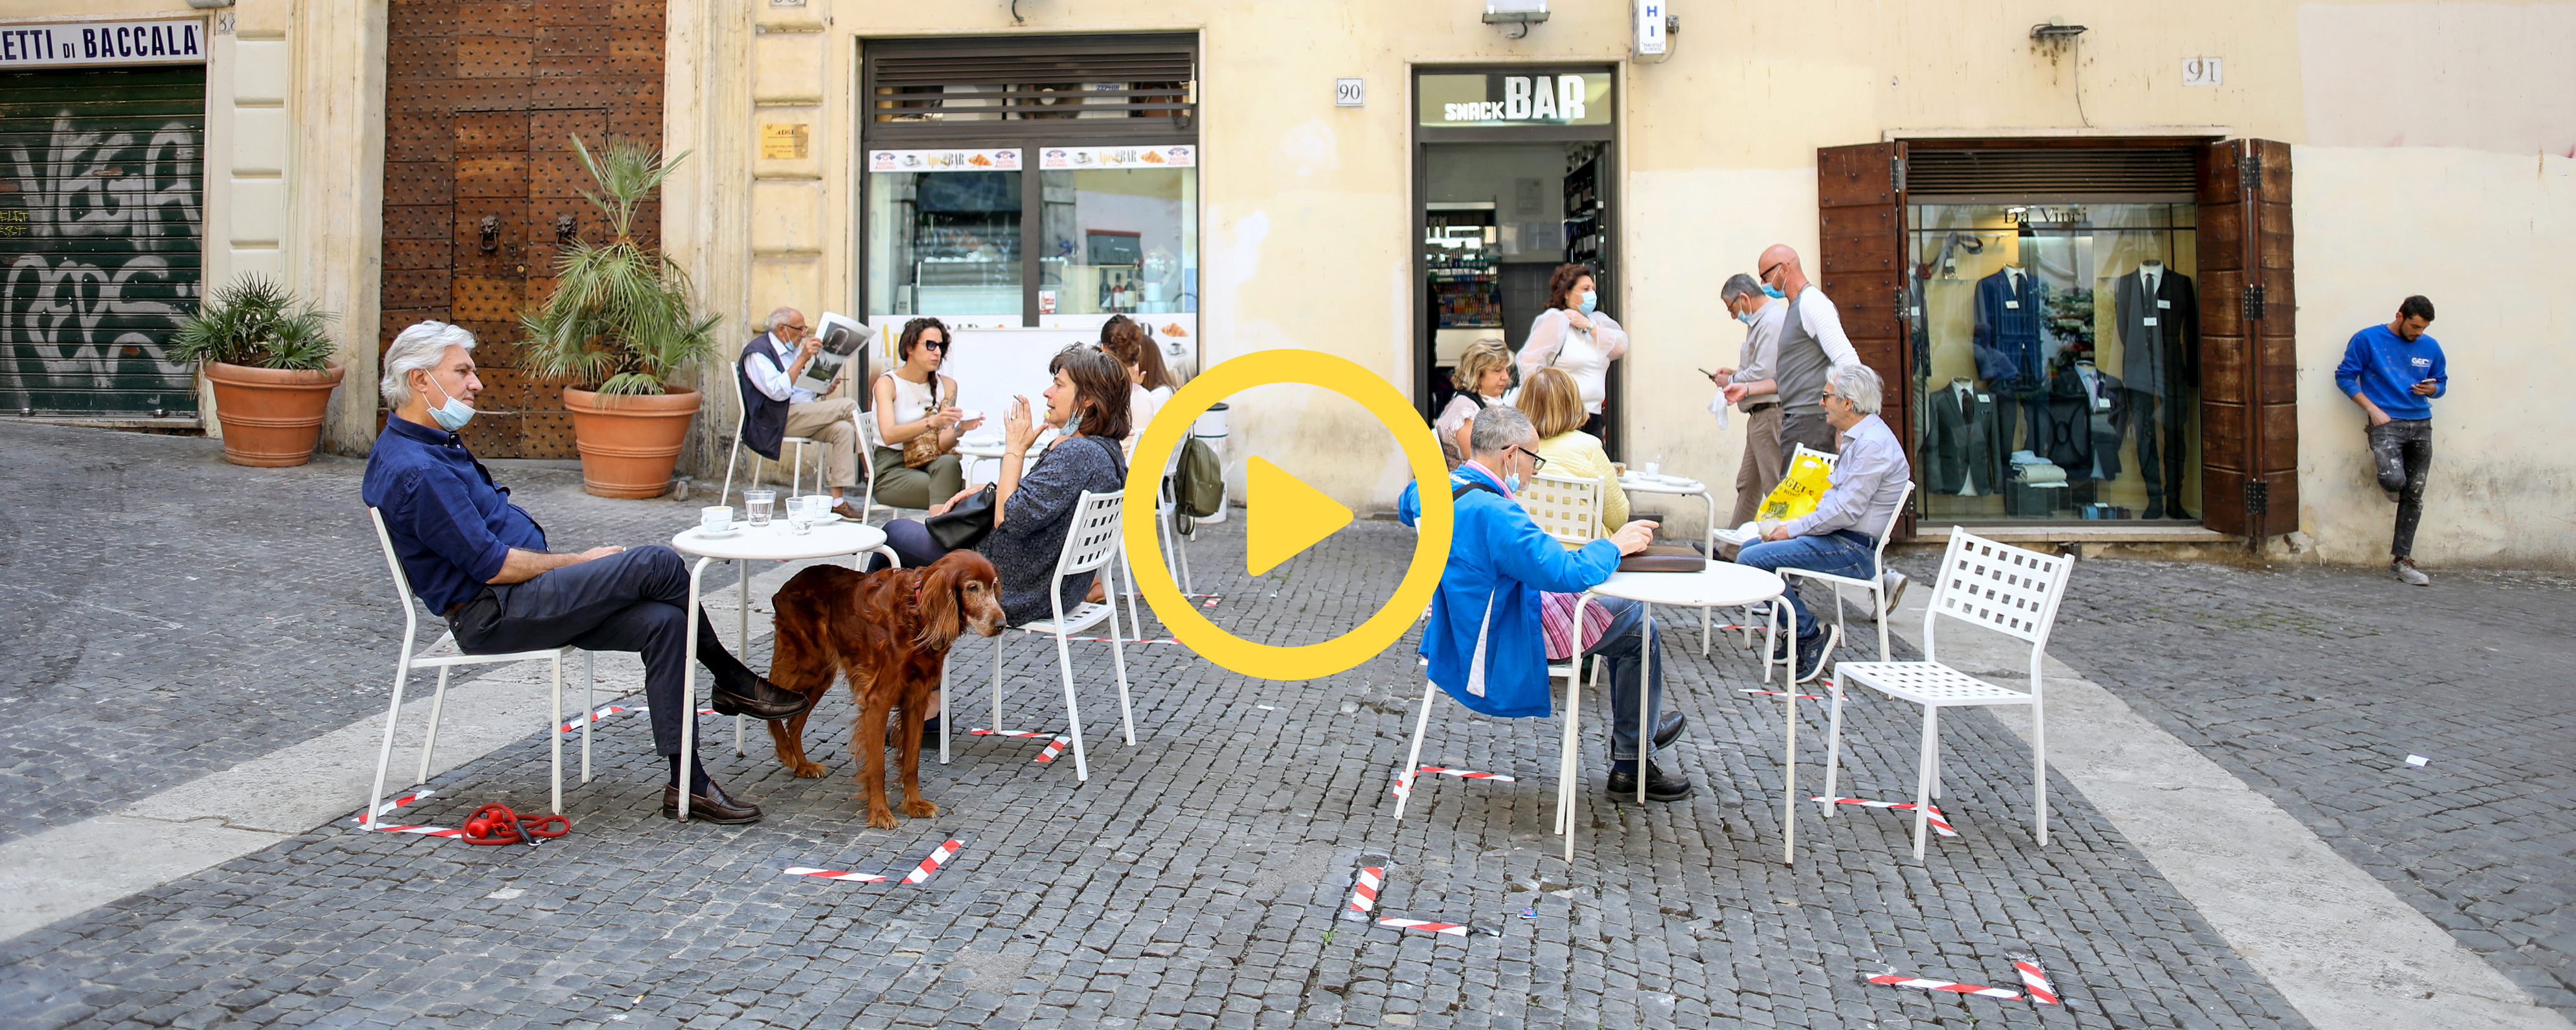 Watch the talk: Physical distancing and sociality in urban space